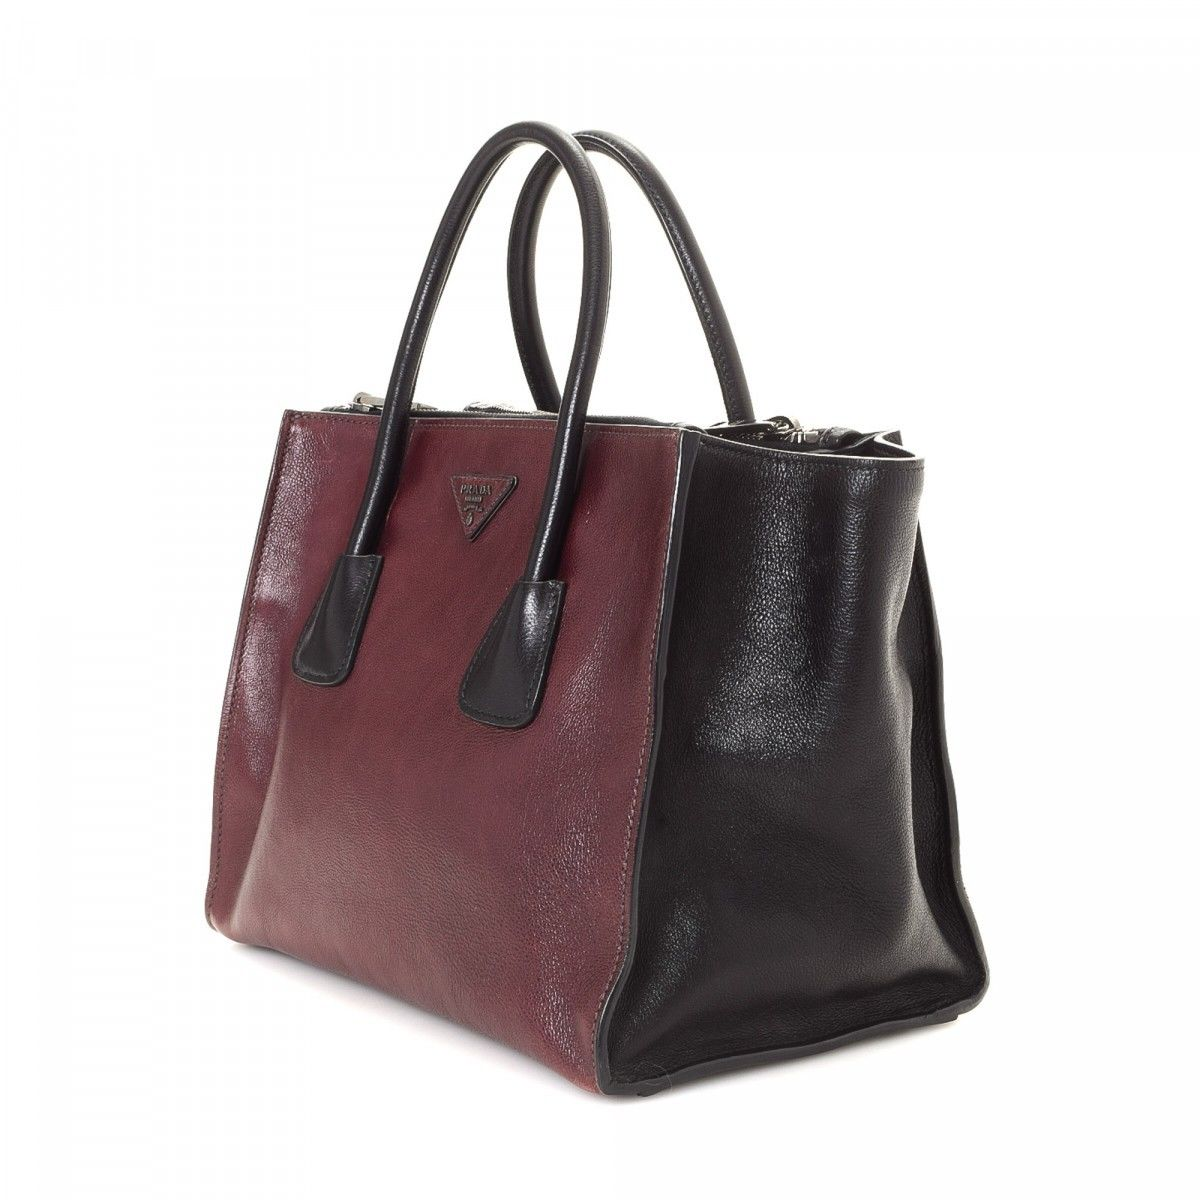 5abccd78c3e4 Prada Two Toned Handbags For Sale Images | Stanford Center for ...